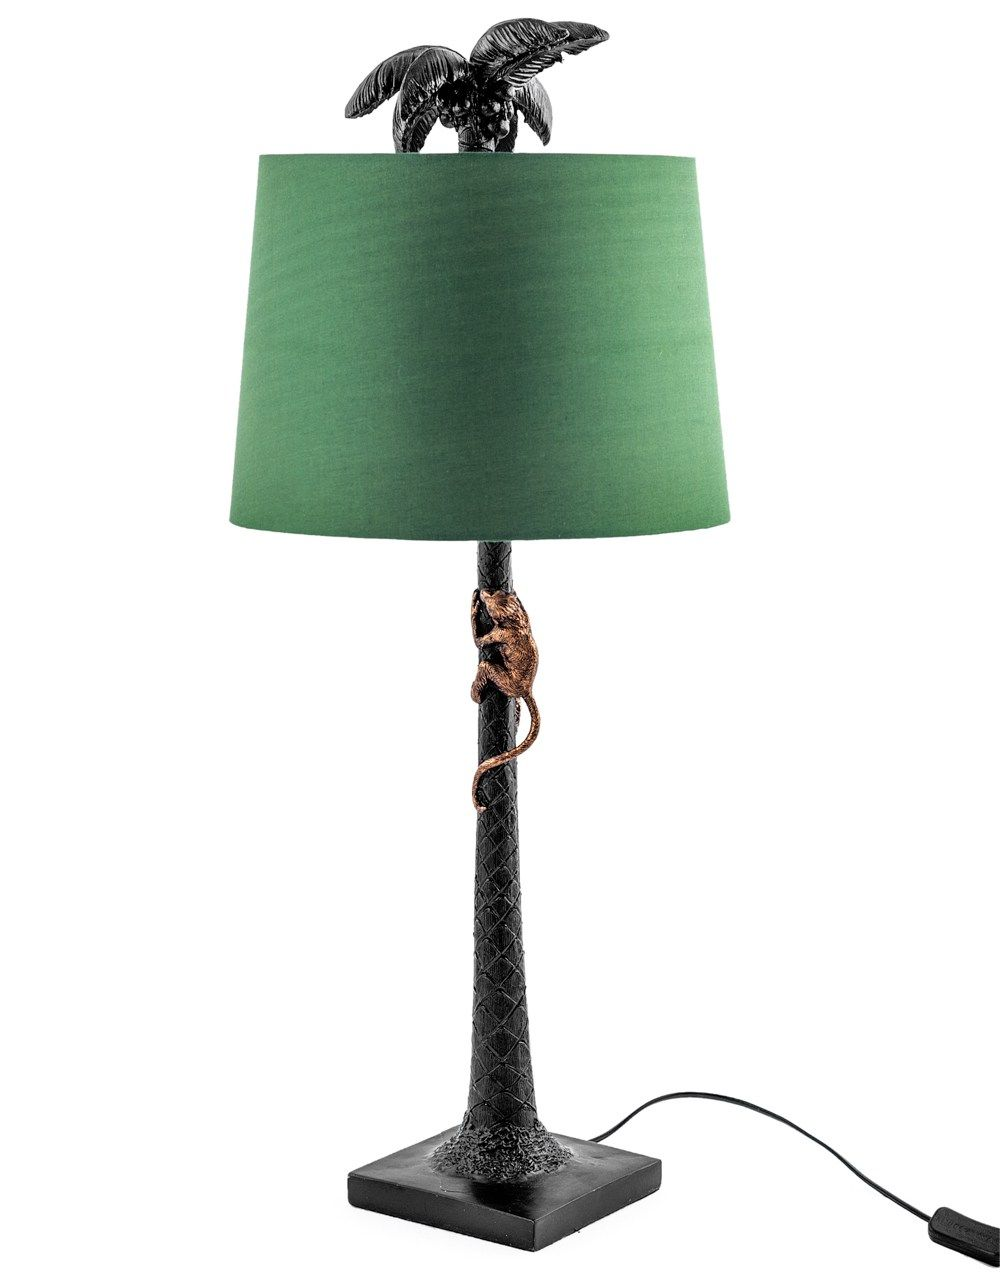 10 Of The Best Nature Inspired Table Lamps A Subtle But Intricately Detailed Lamp In